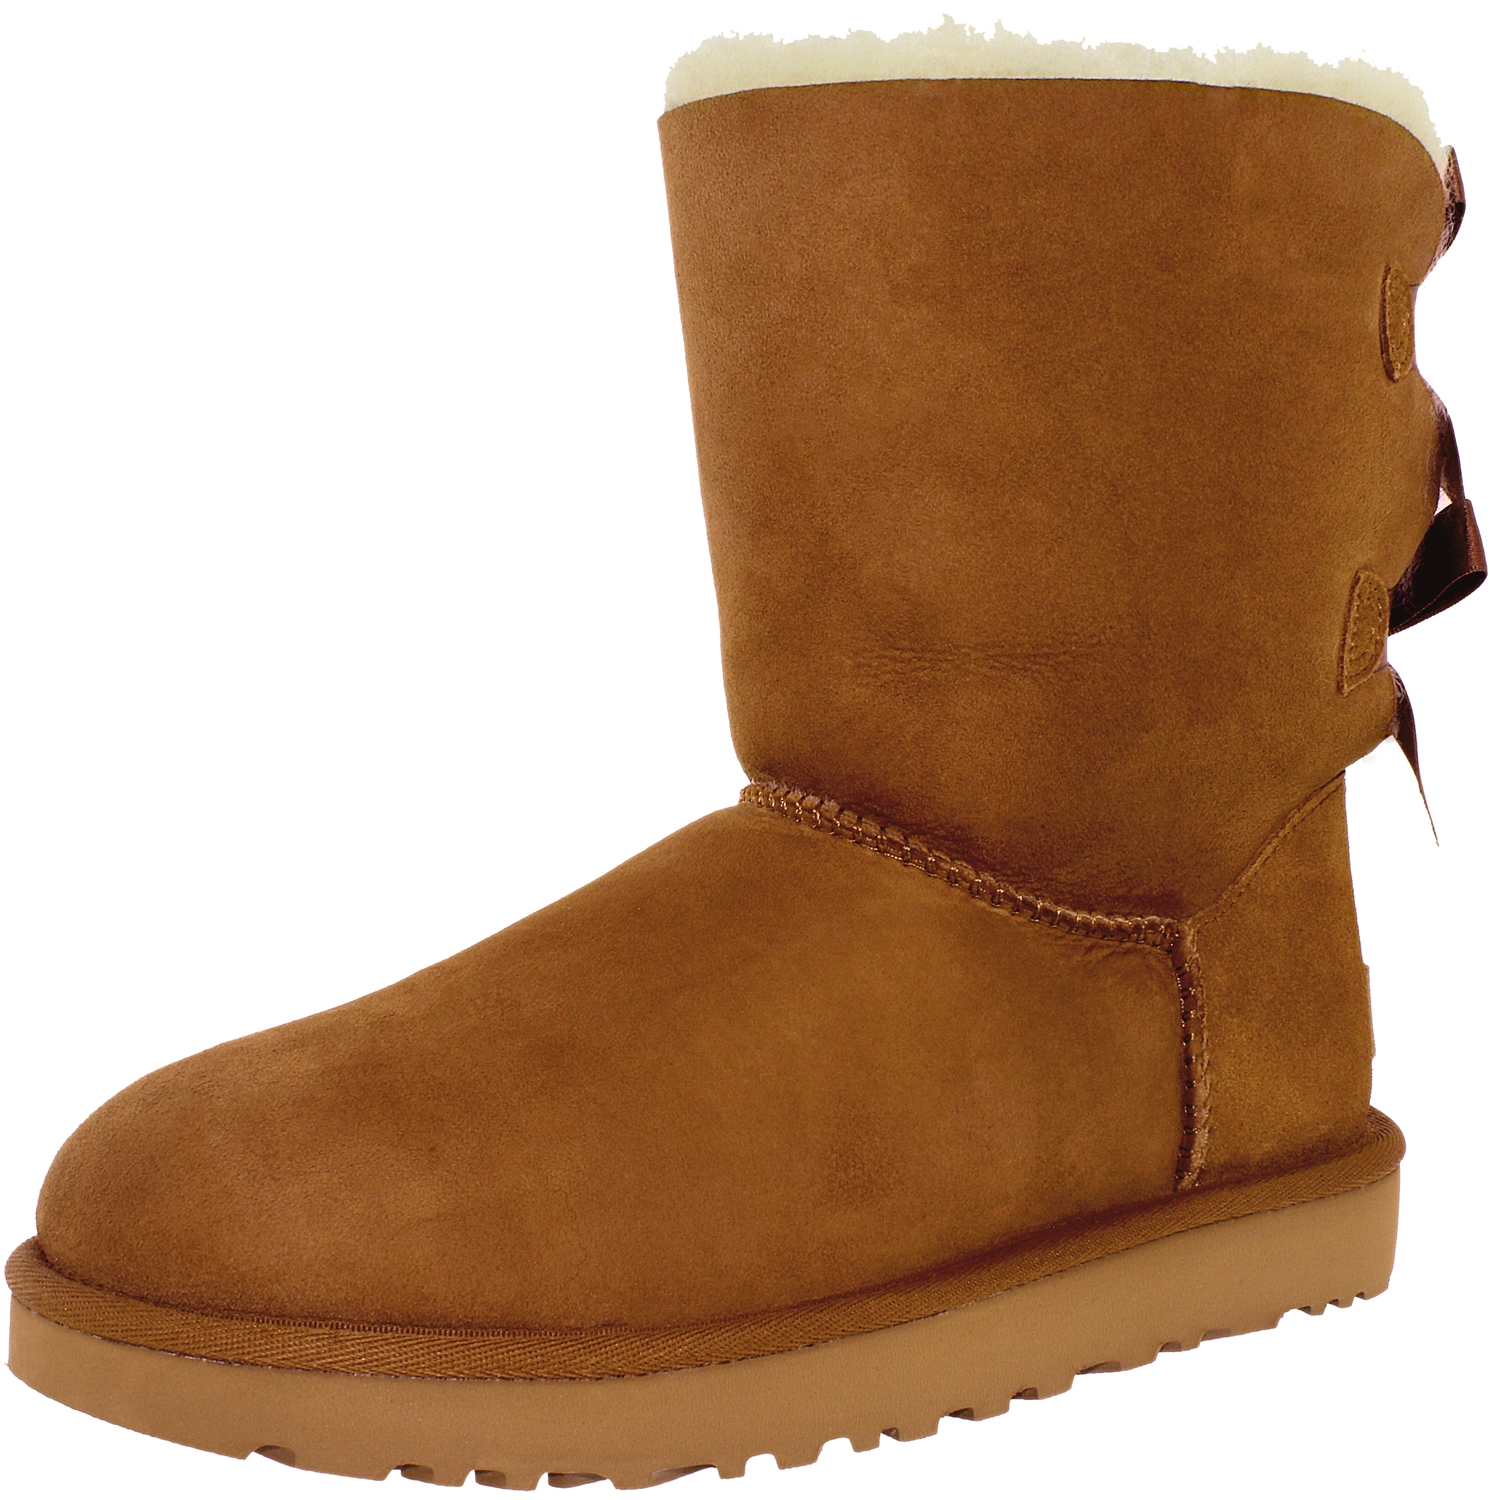 73fdfa39015 wholesale ugg classic mini boots 5854 chocolate mousse e6736 97307